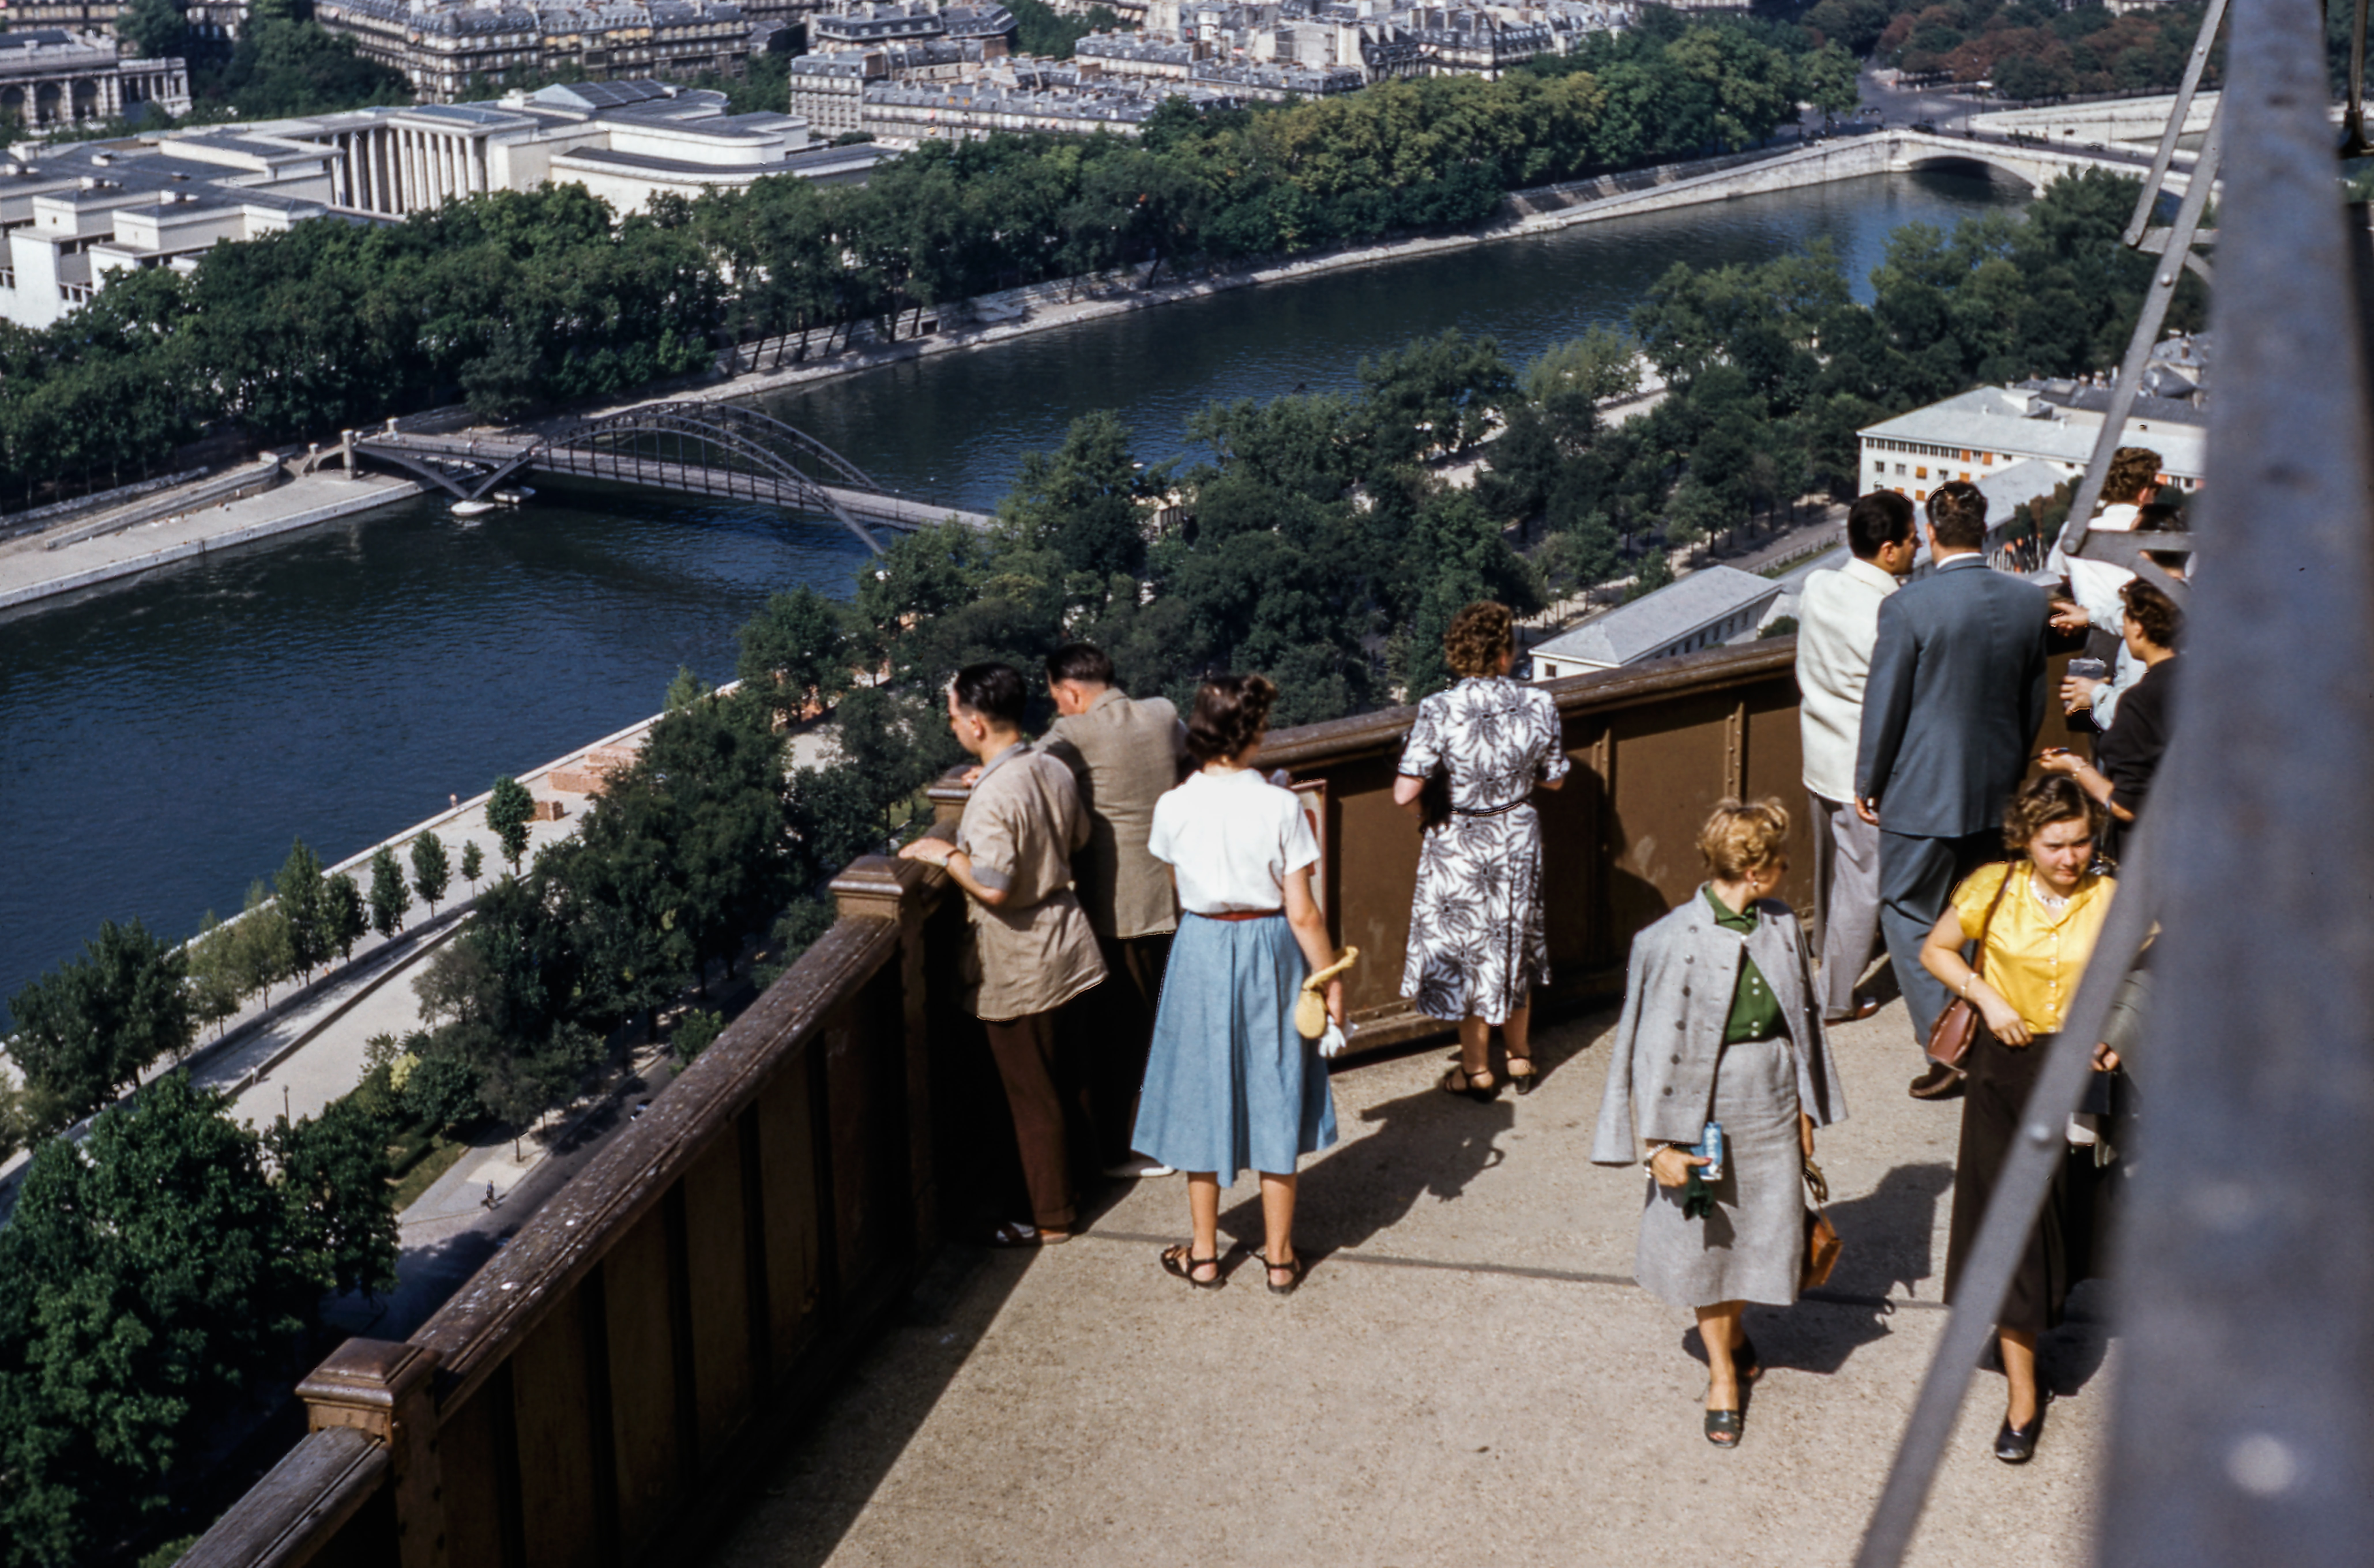 Vintage photo of fashionable tourists looking over the Paris cityscape.